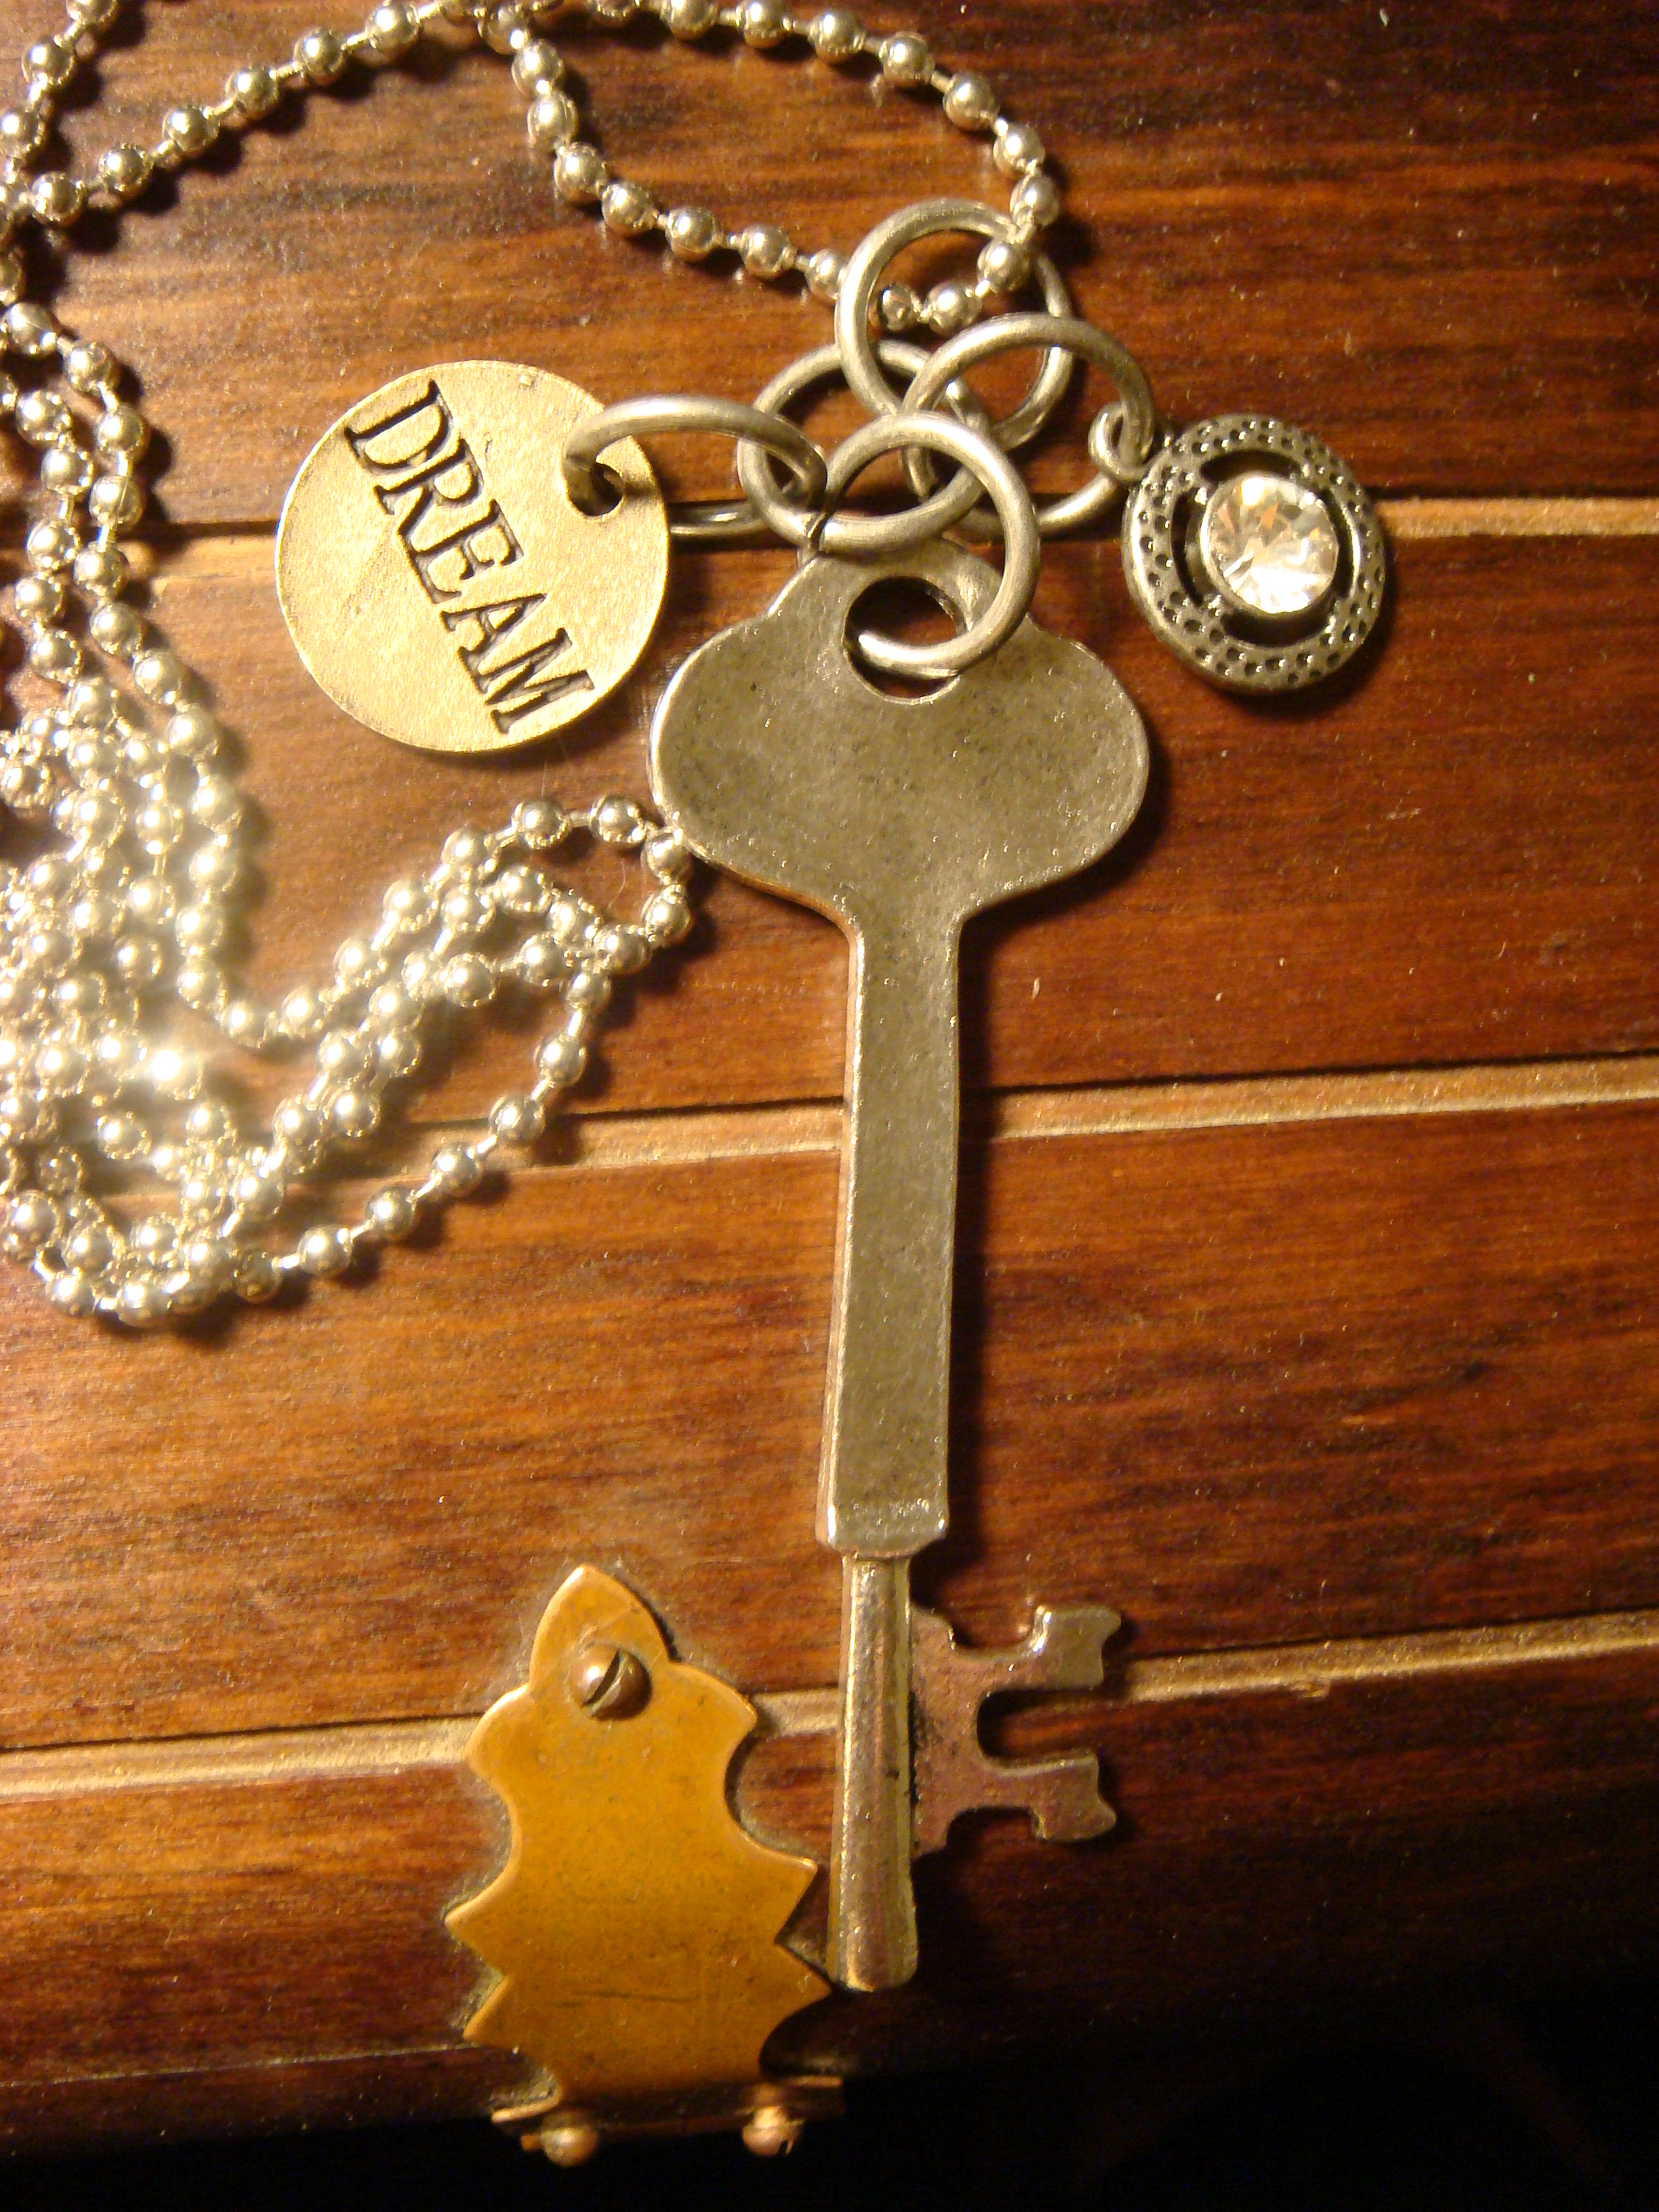 steampunk_skeleton_key_dream_jewel_necklace_necklaces_3.JPG